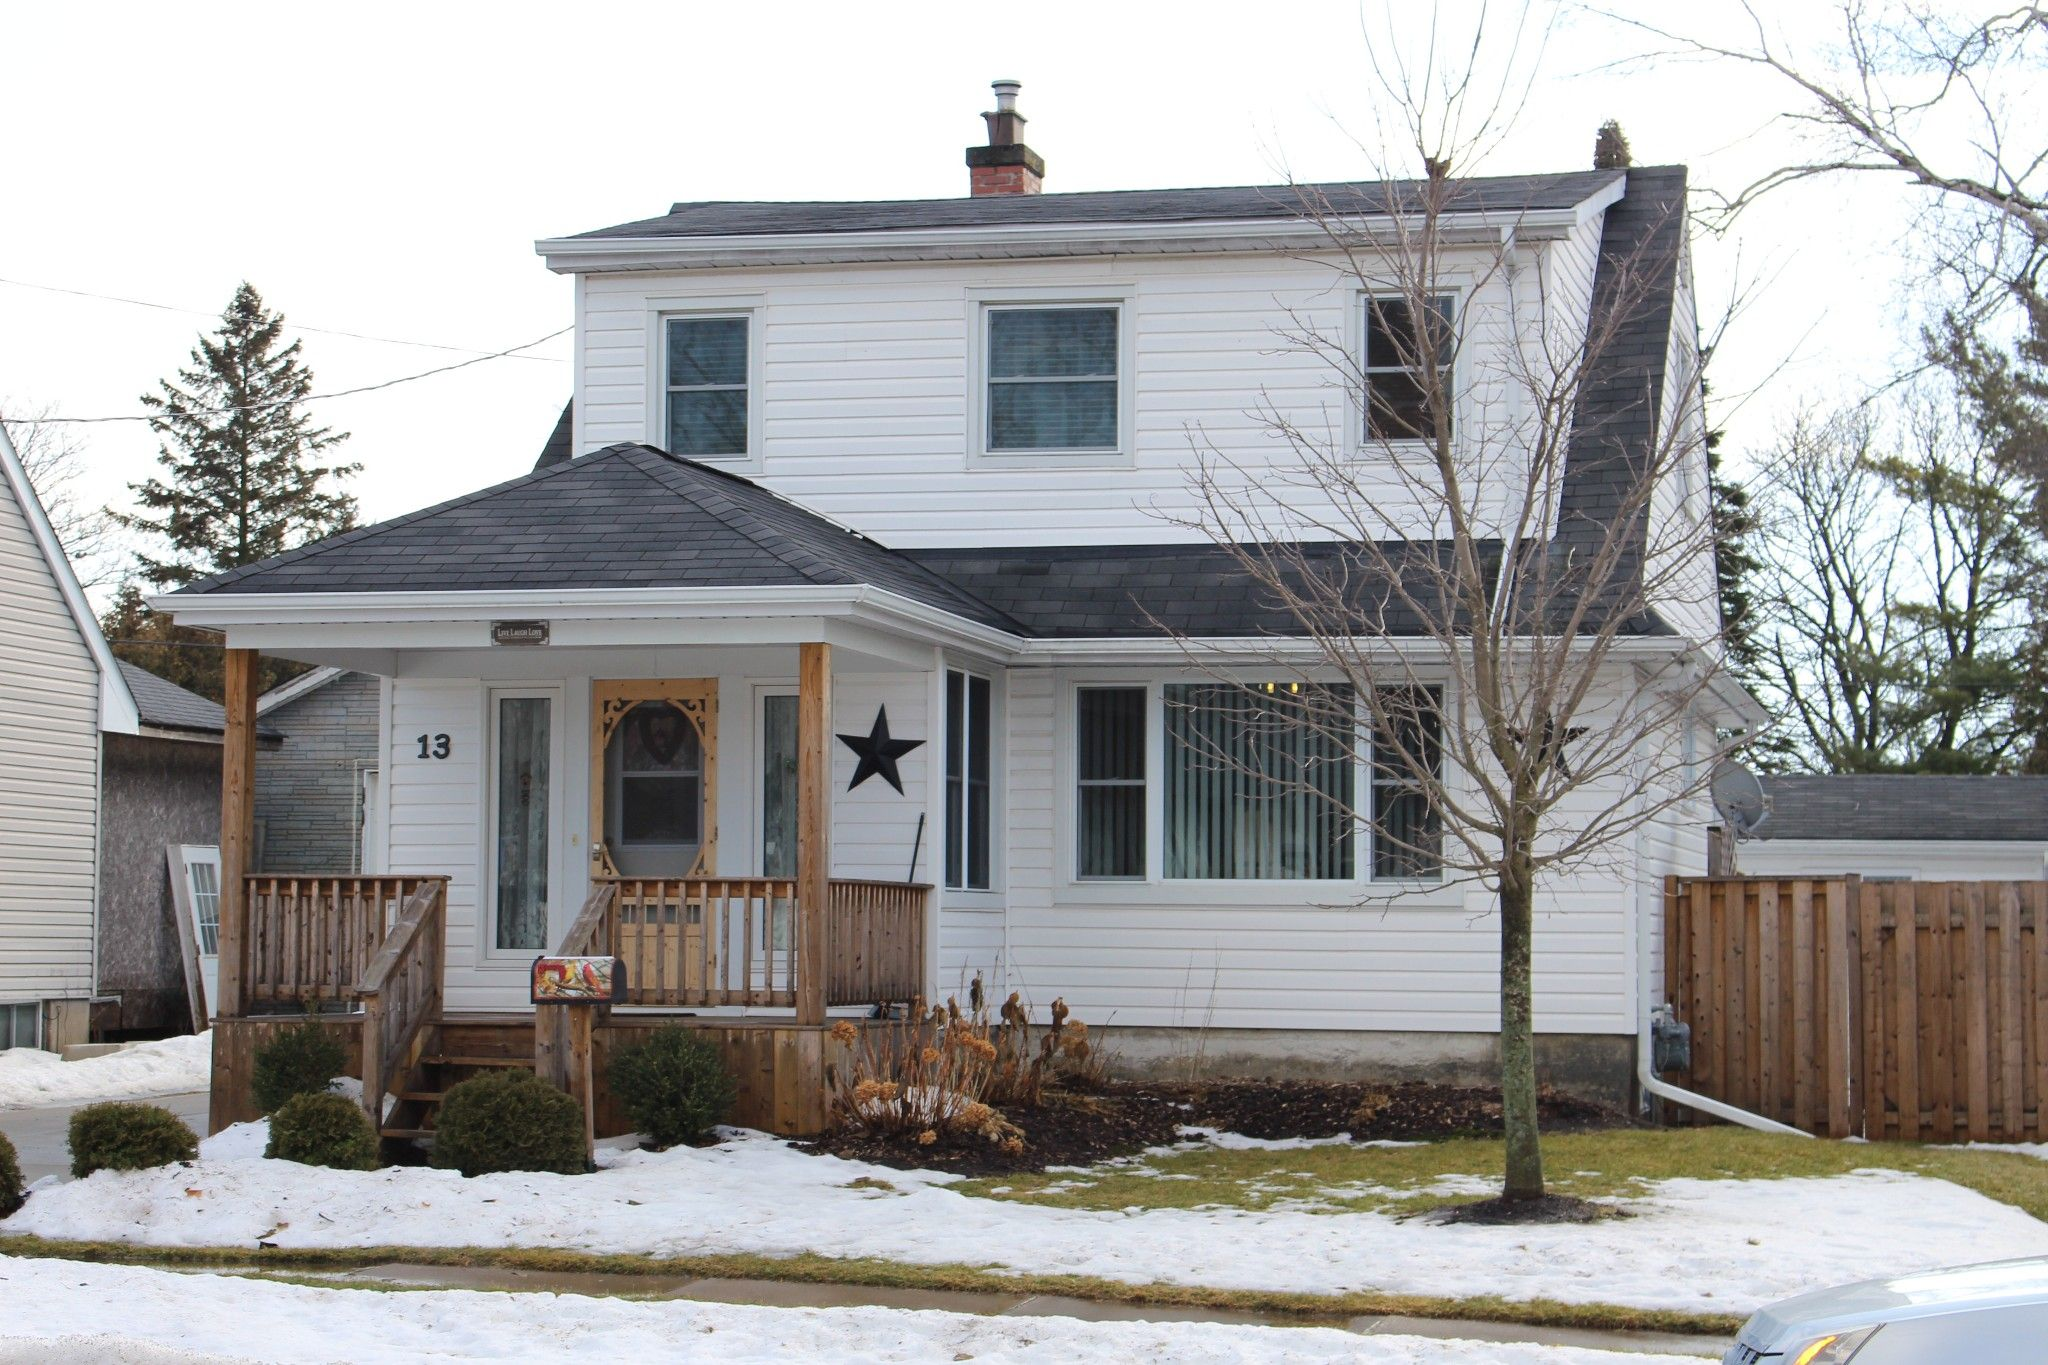 Main Photo: 13 Arthur Street in Port Hope: House for sale : MLS®# 510670102